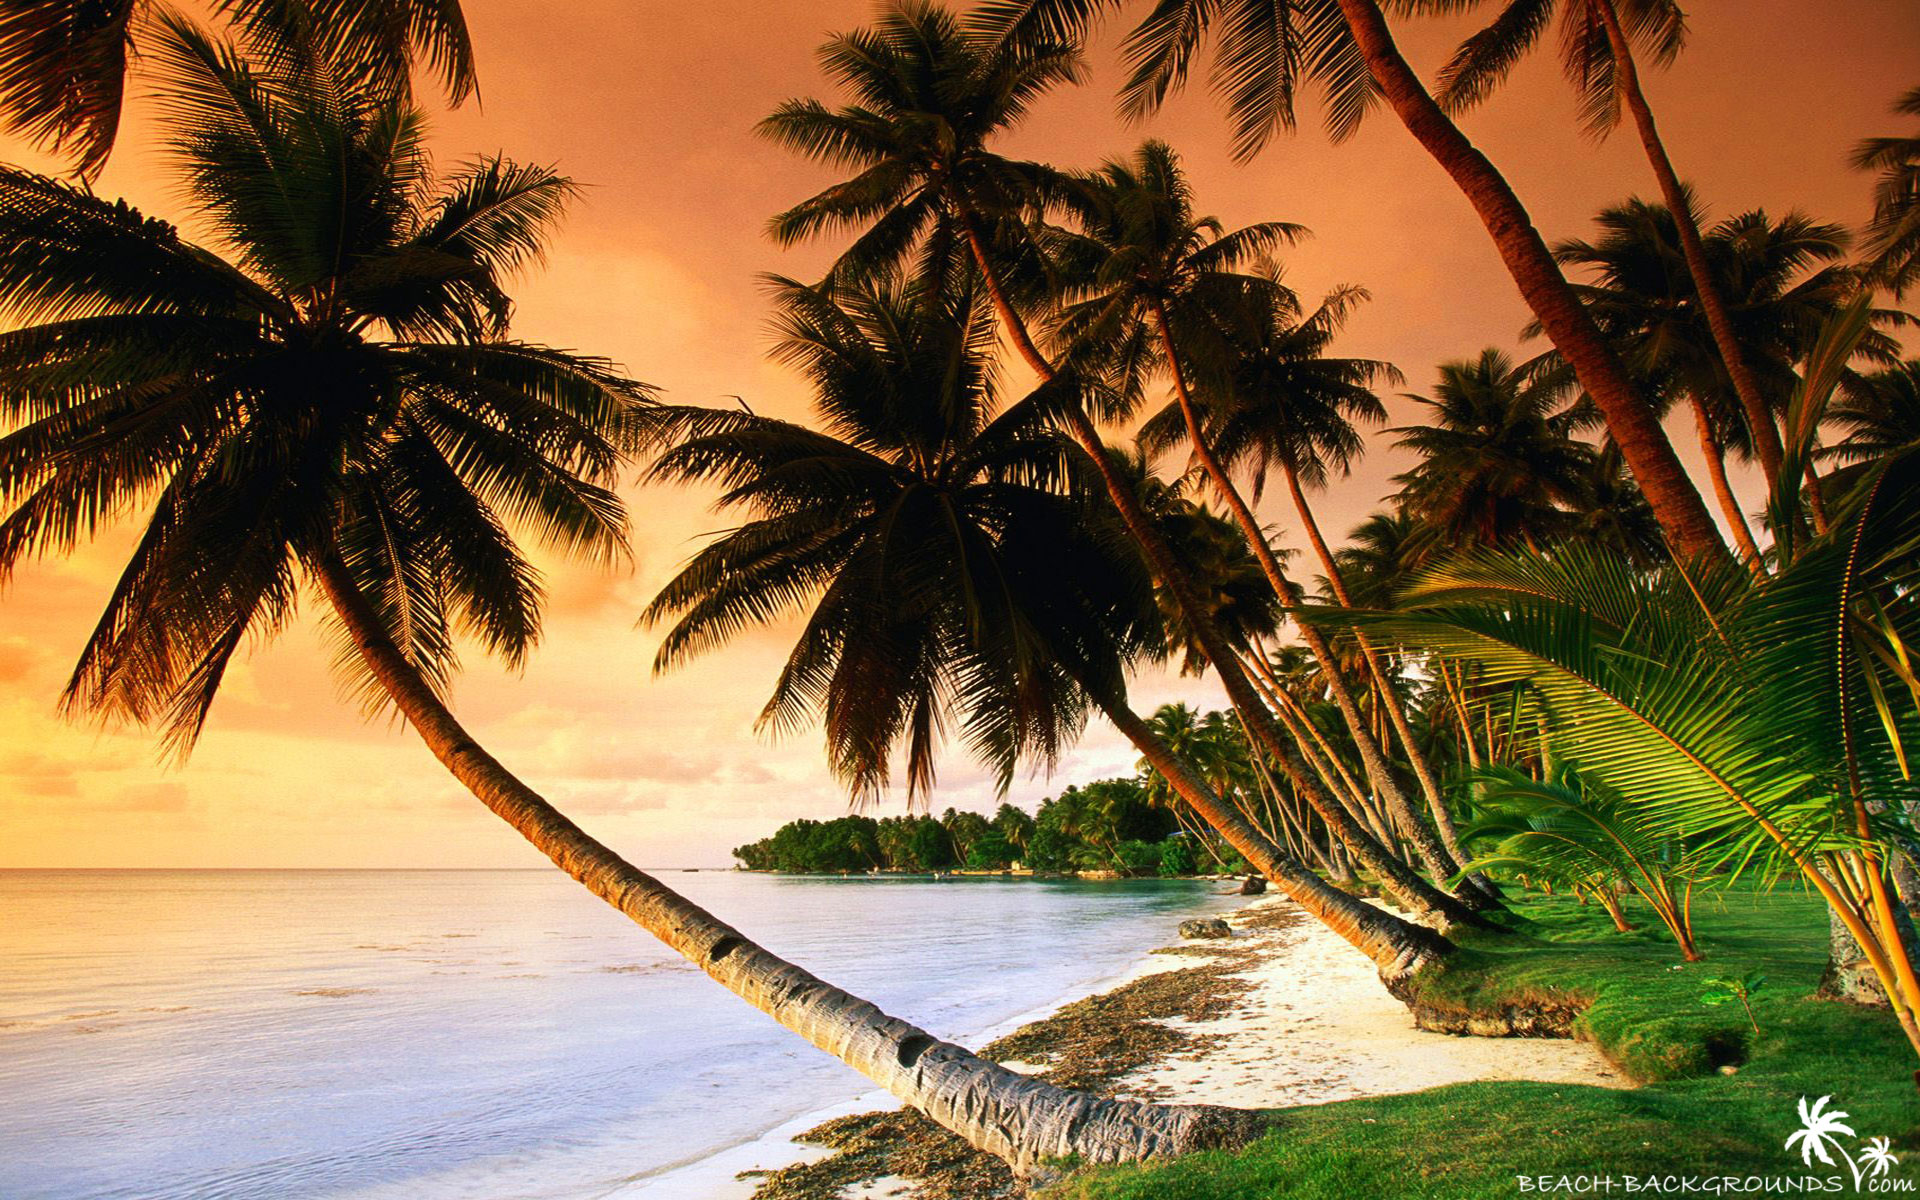 Beautiful Beach Backgrounds Palm Trees Images amp Pictures